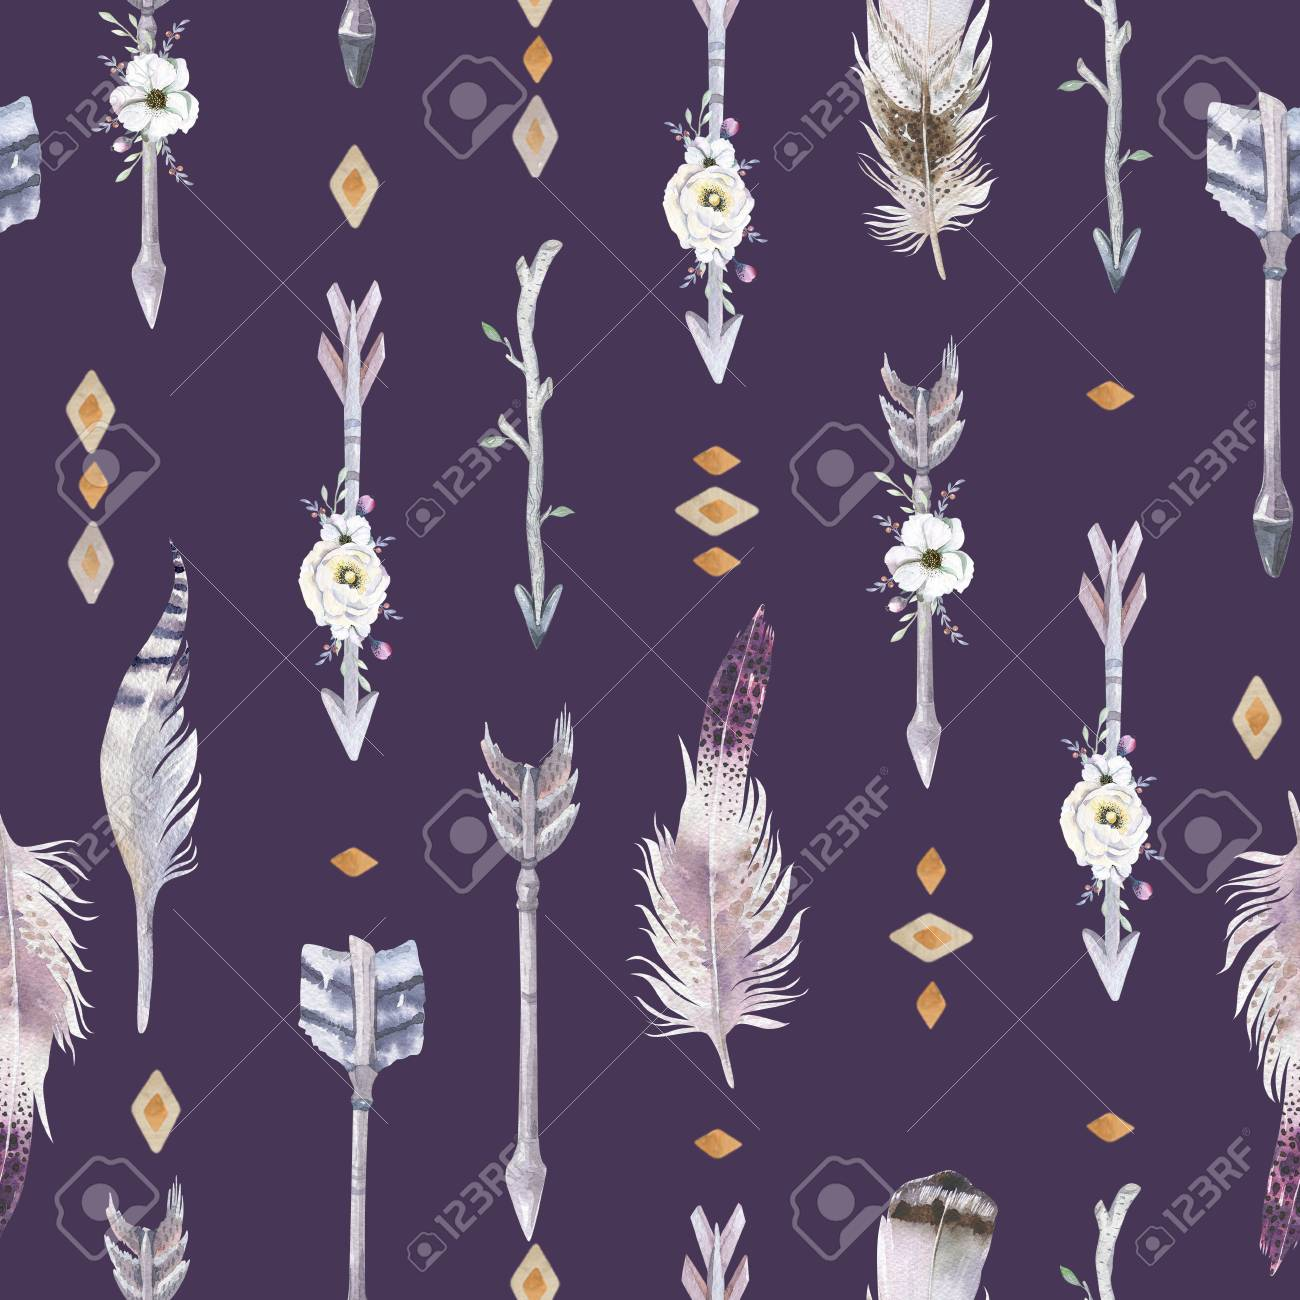 Watercolor Boho Seamless Pattern With Teepee Arrows And Feathers 1300x1300